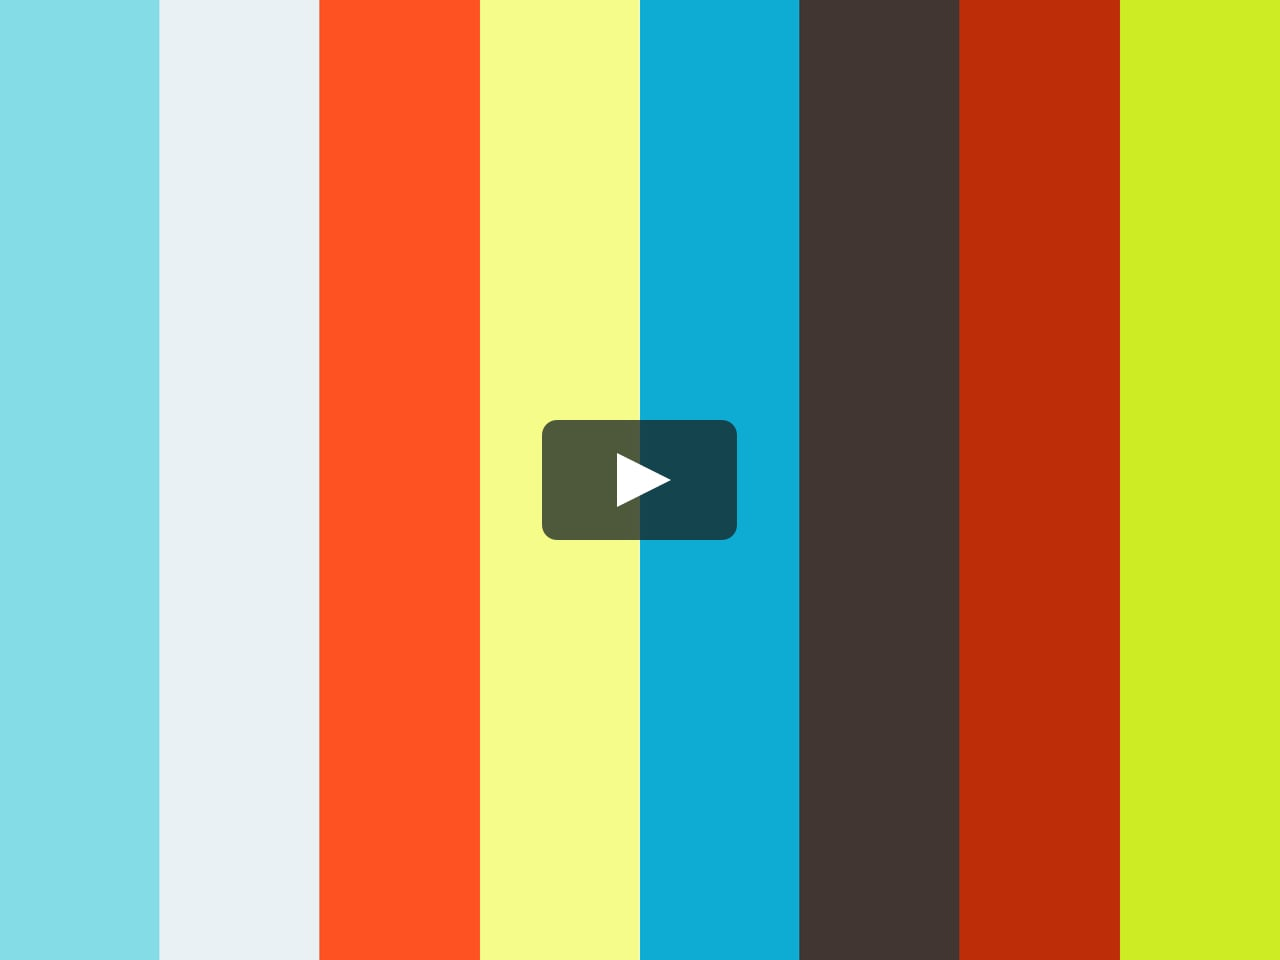 presentation topics for college students on vimeo